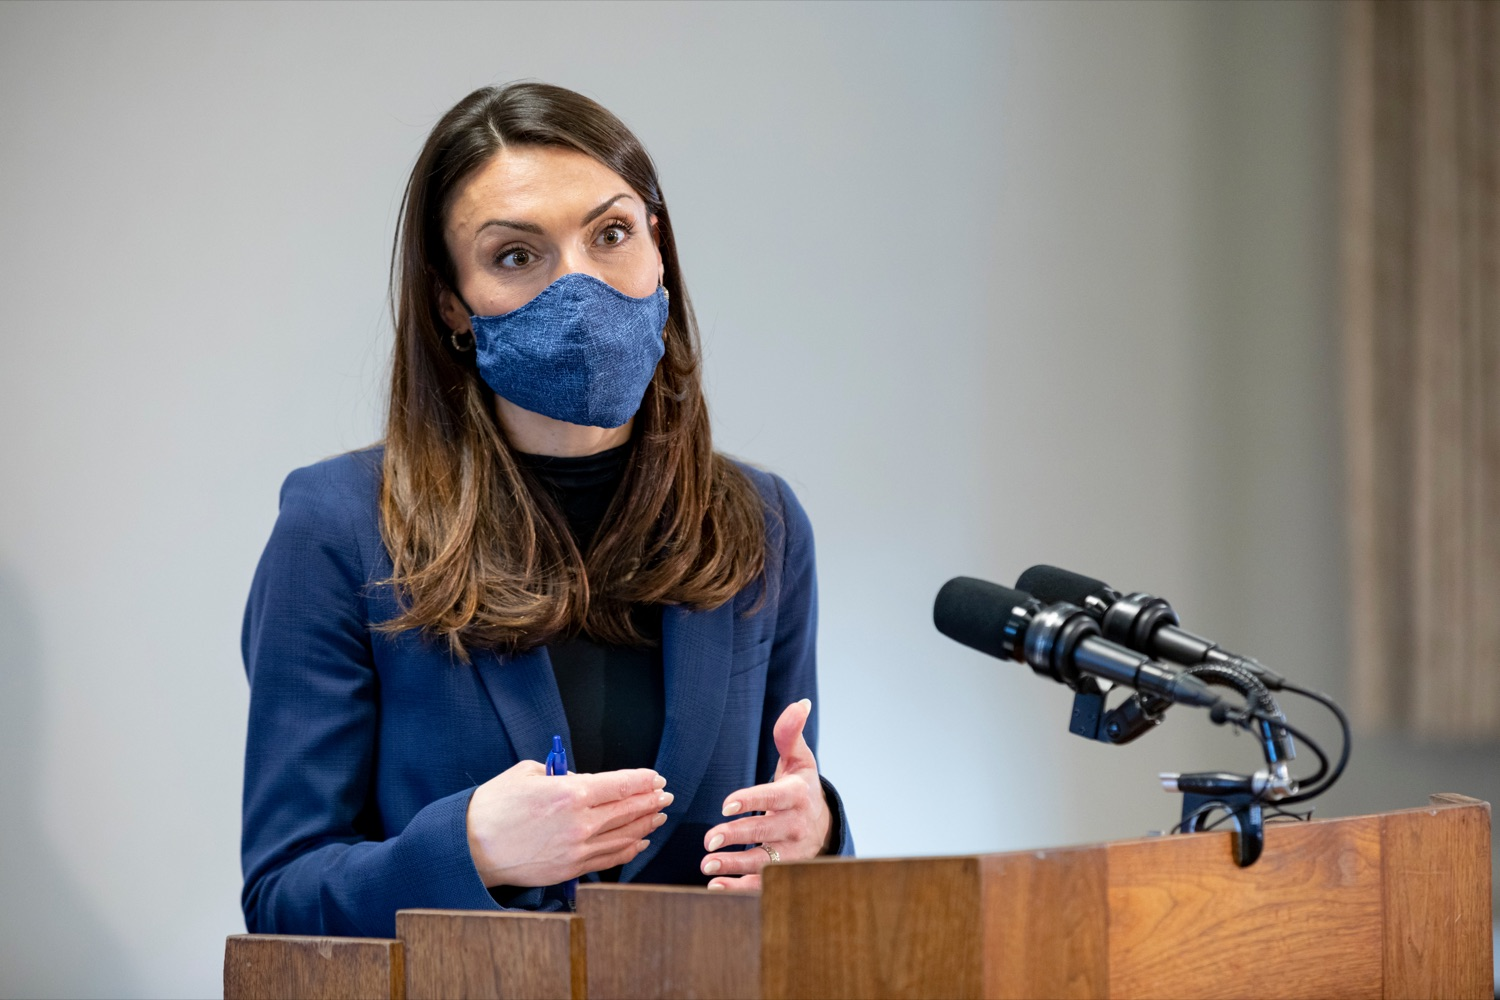 Acting Secretary of Health Alison Beam speaks during a press conference at Masonic Village in Elizabethtown on Monday, March 29, 2021. (Source: Pa.gov)